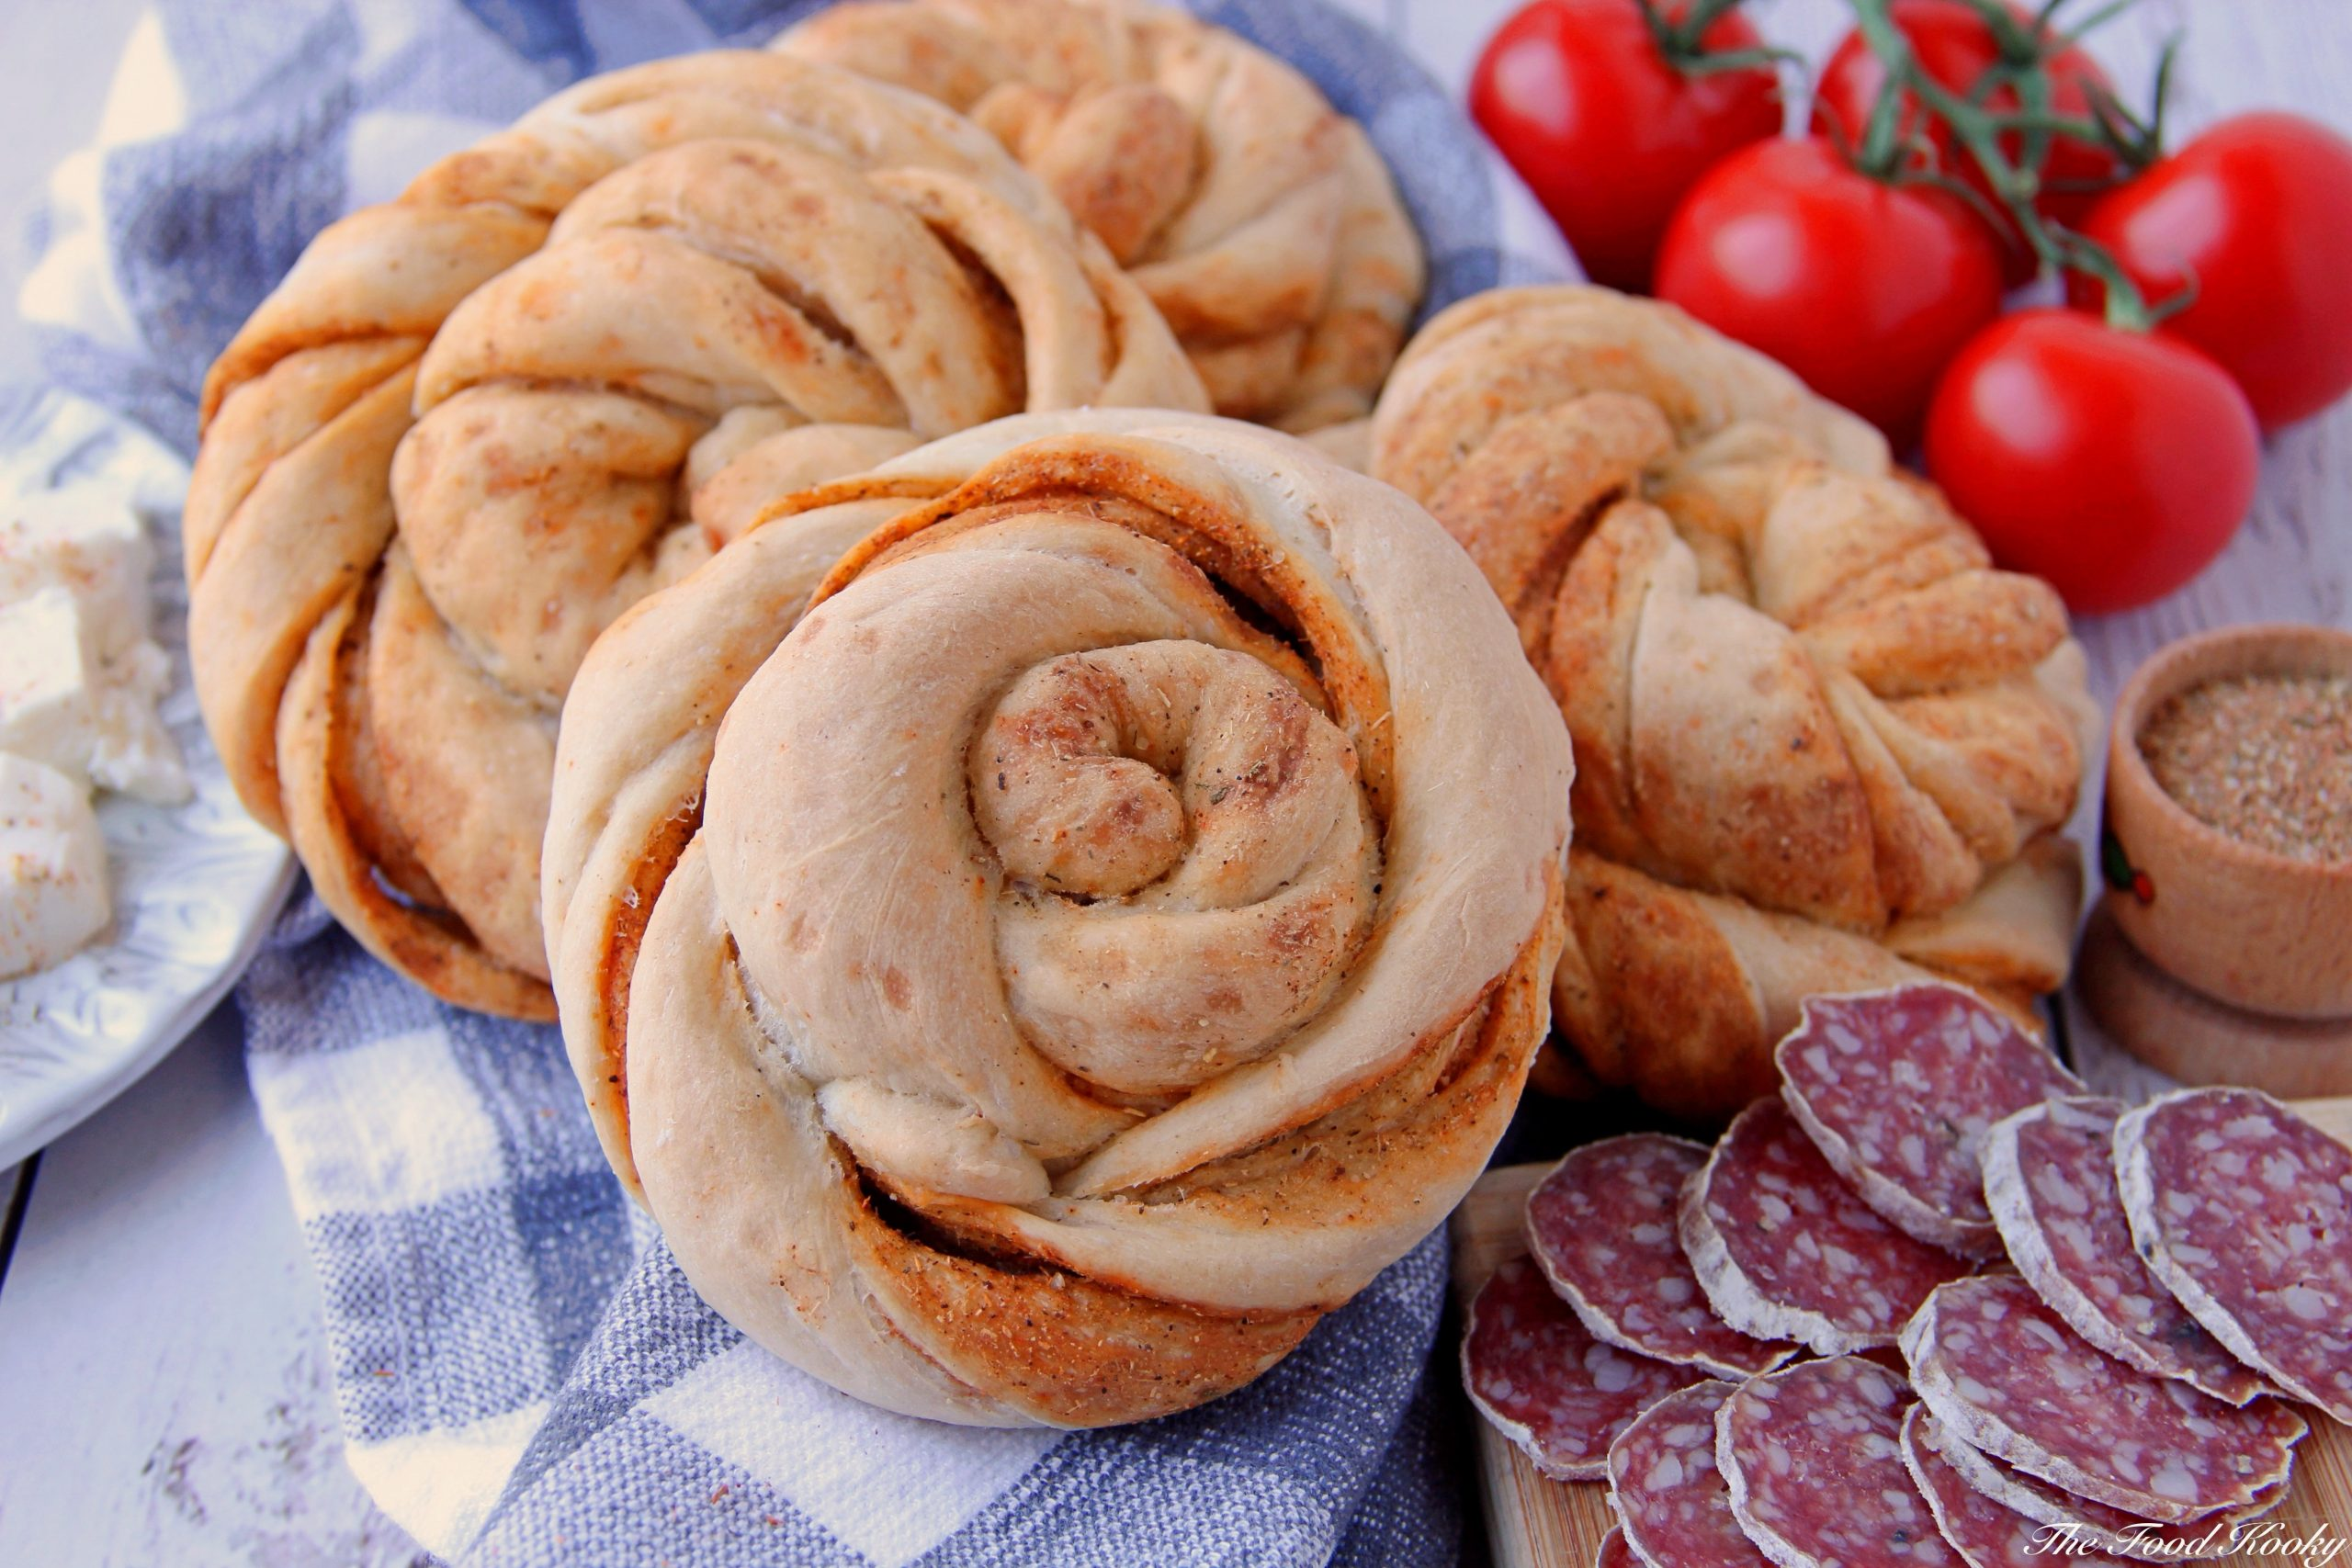 Twisted Spiral Bread Buns with Mediterranean Spices (Video)